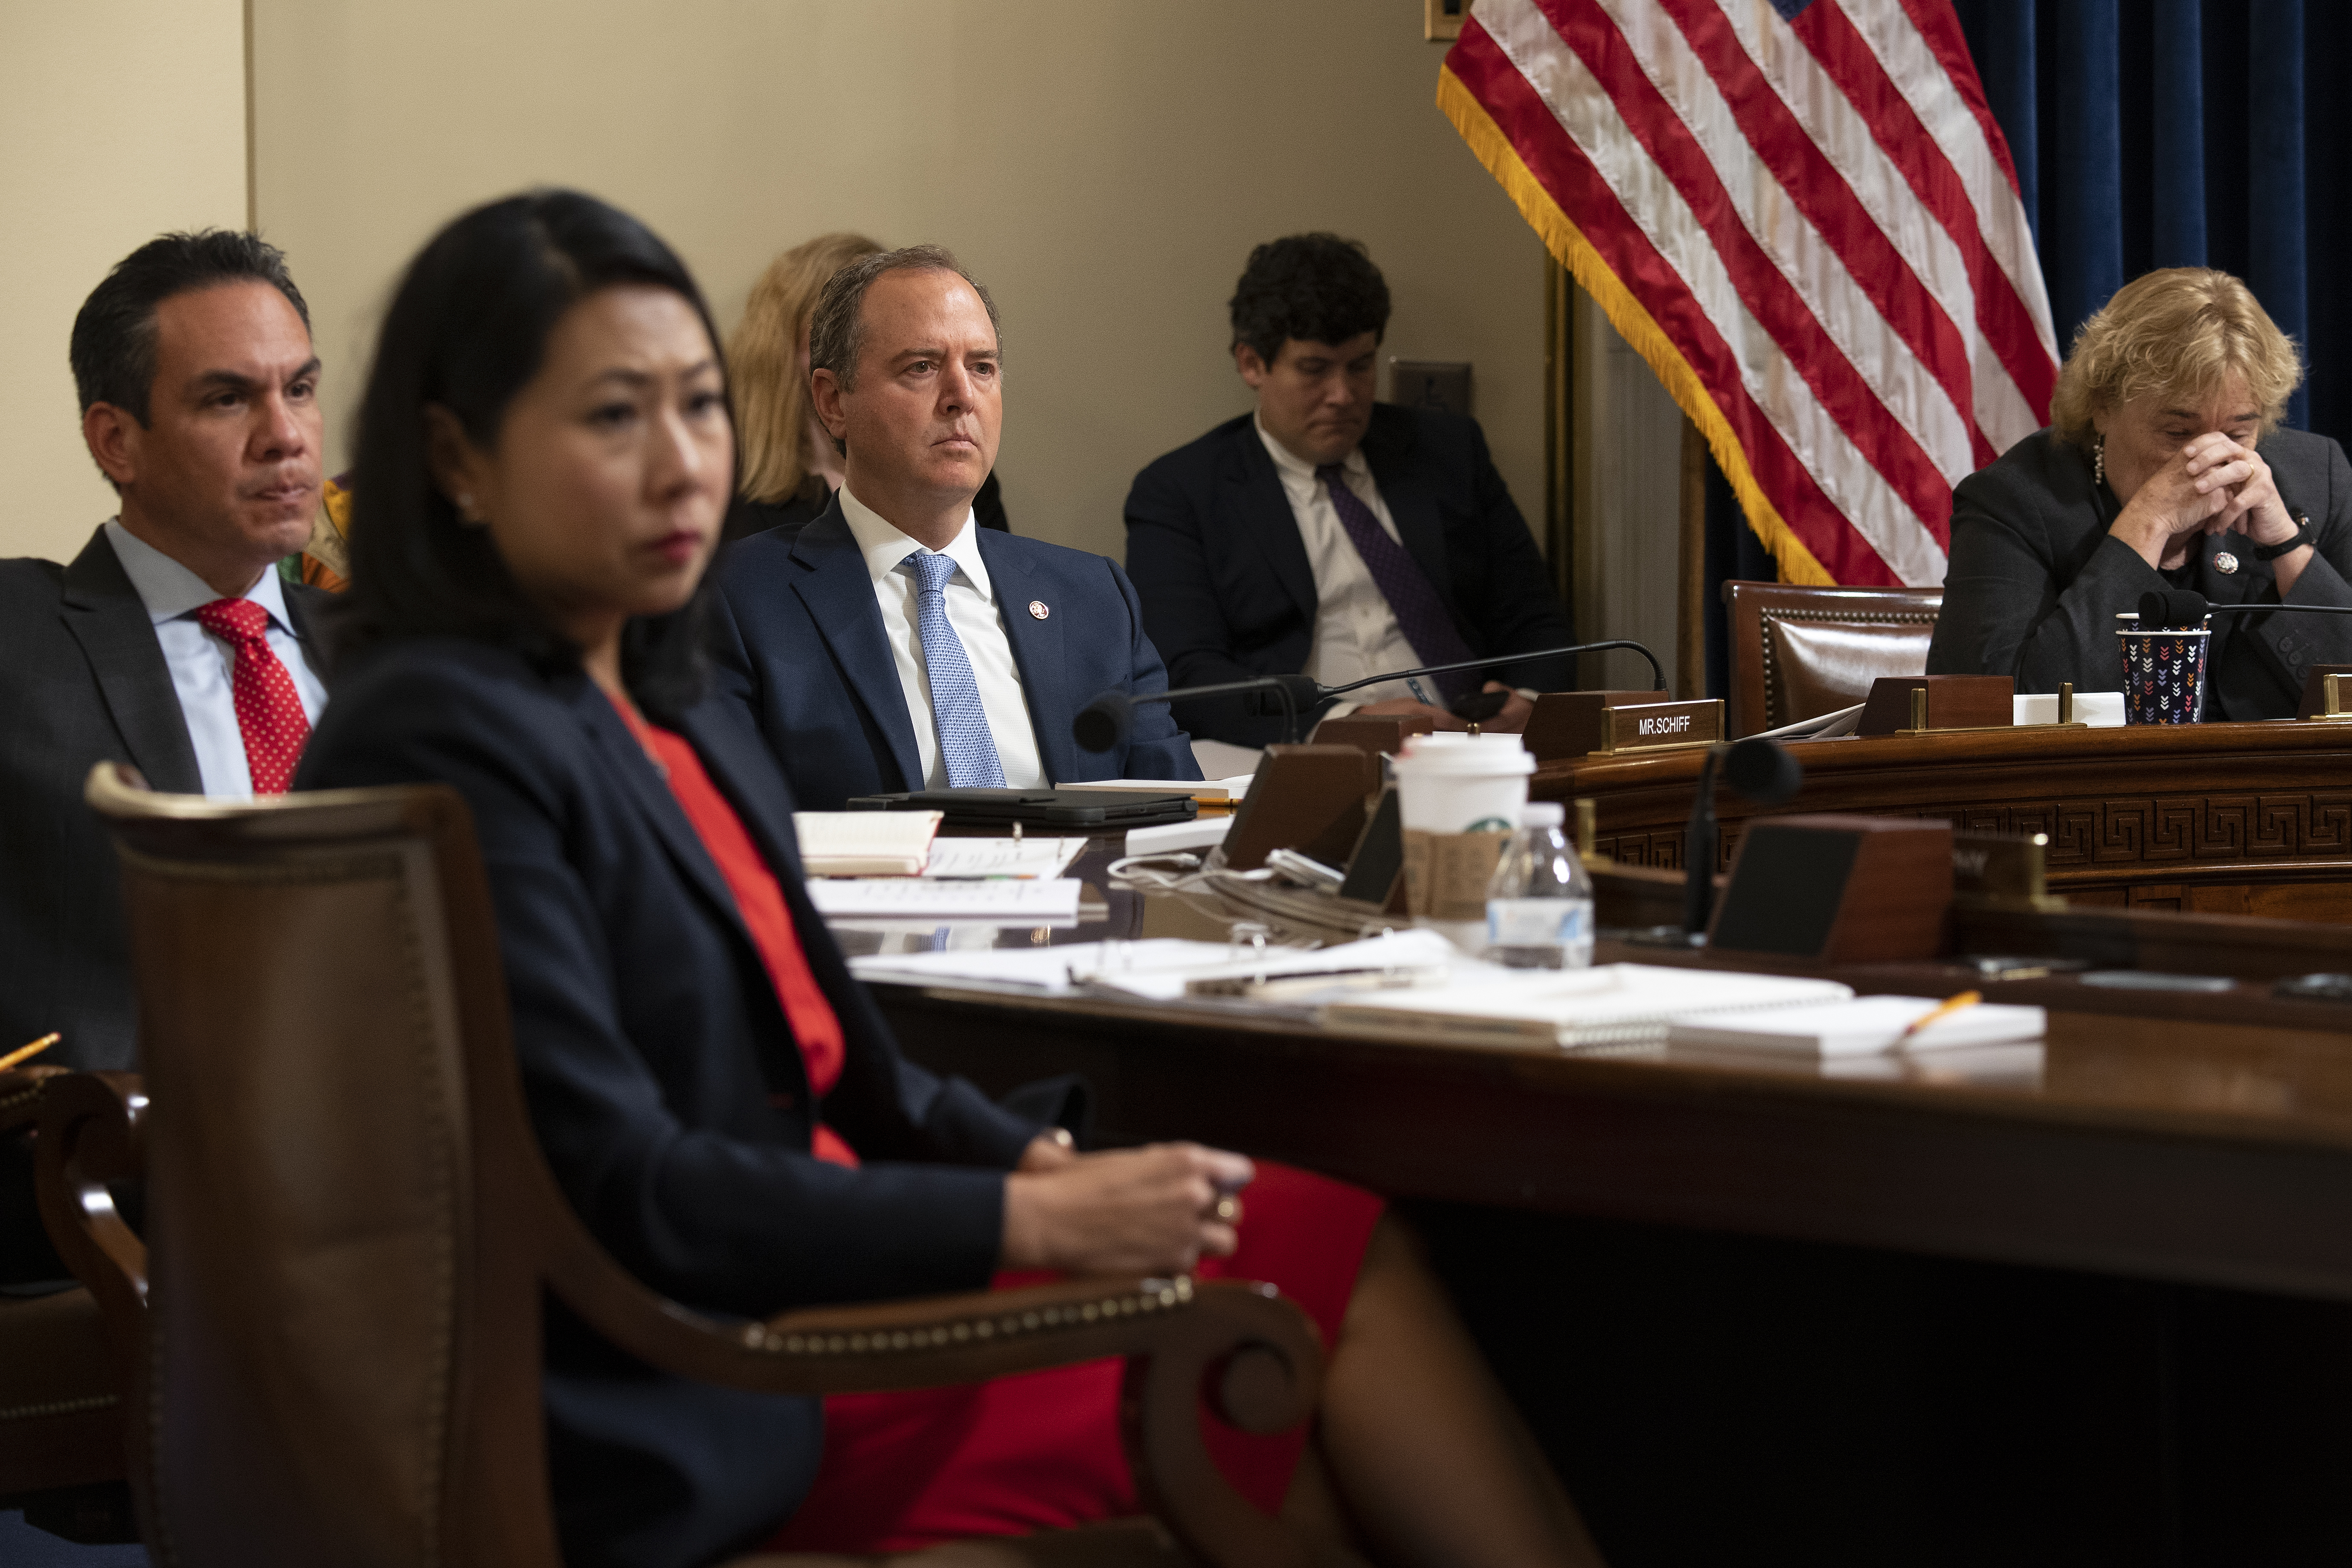 Rep. Pete Aguilar (D-Calif.), Rep. Stephanie Murphy (D-Fla.) Rep. Adam Schiff (D-Calif.), and Rep. Zoe Lofgren (D-Calif.) listen during a hearing of the House select committee at the Cannon House Office Building in Washington, D.C. (Photo by Brendan Smialowski-Pool/Getty Images)